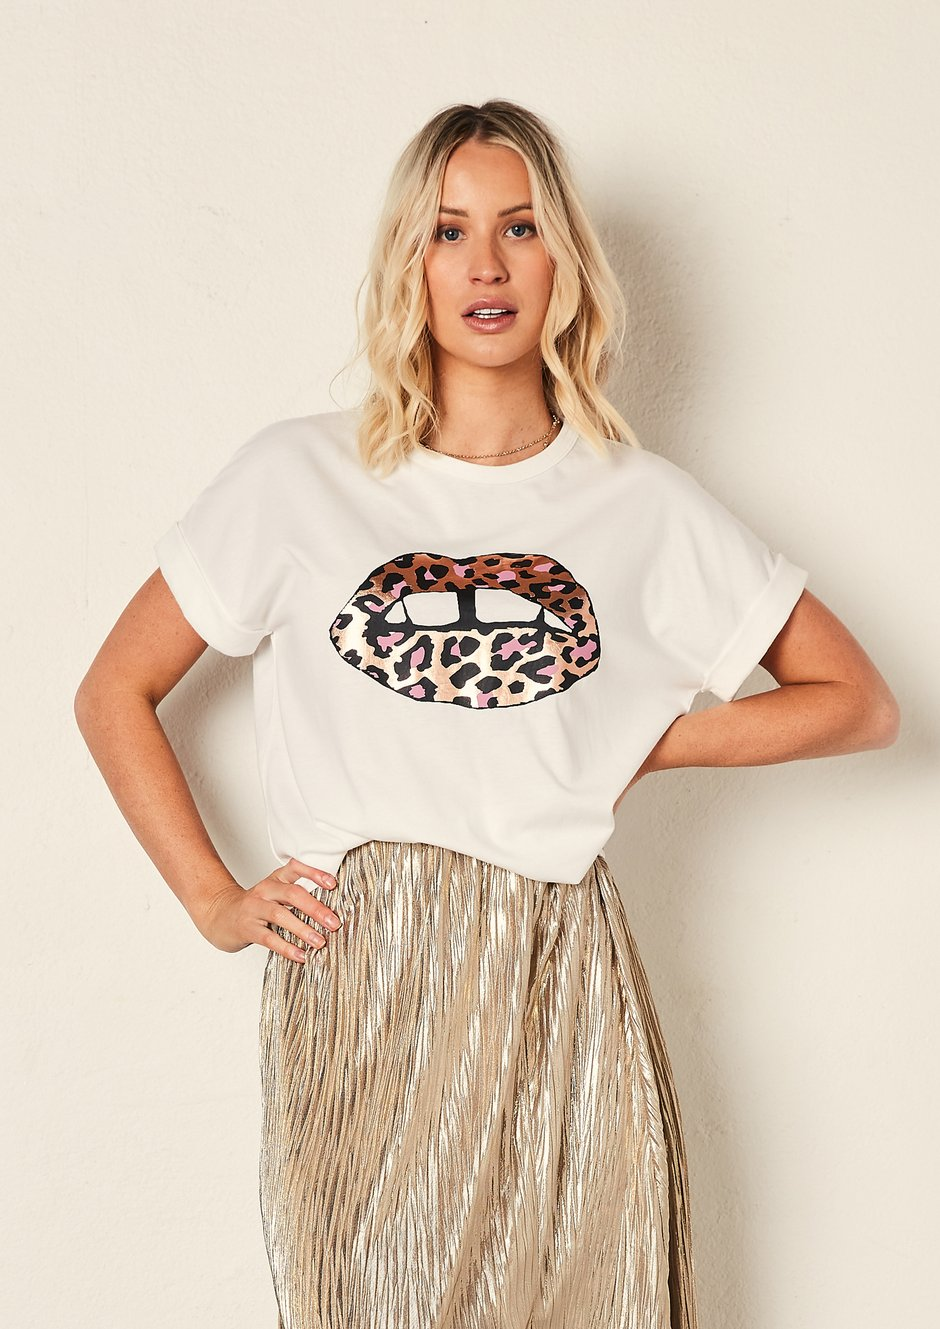 The Relaxed Tee - White/Leopard Lips